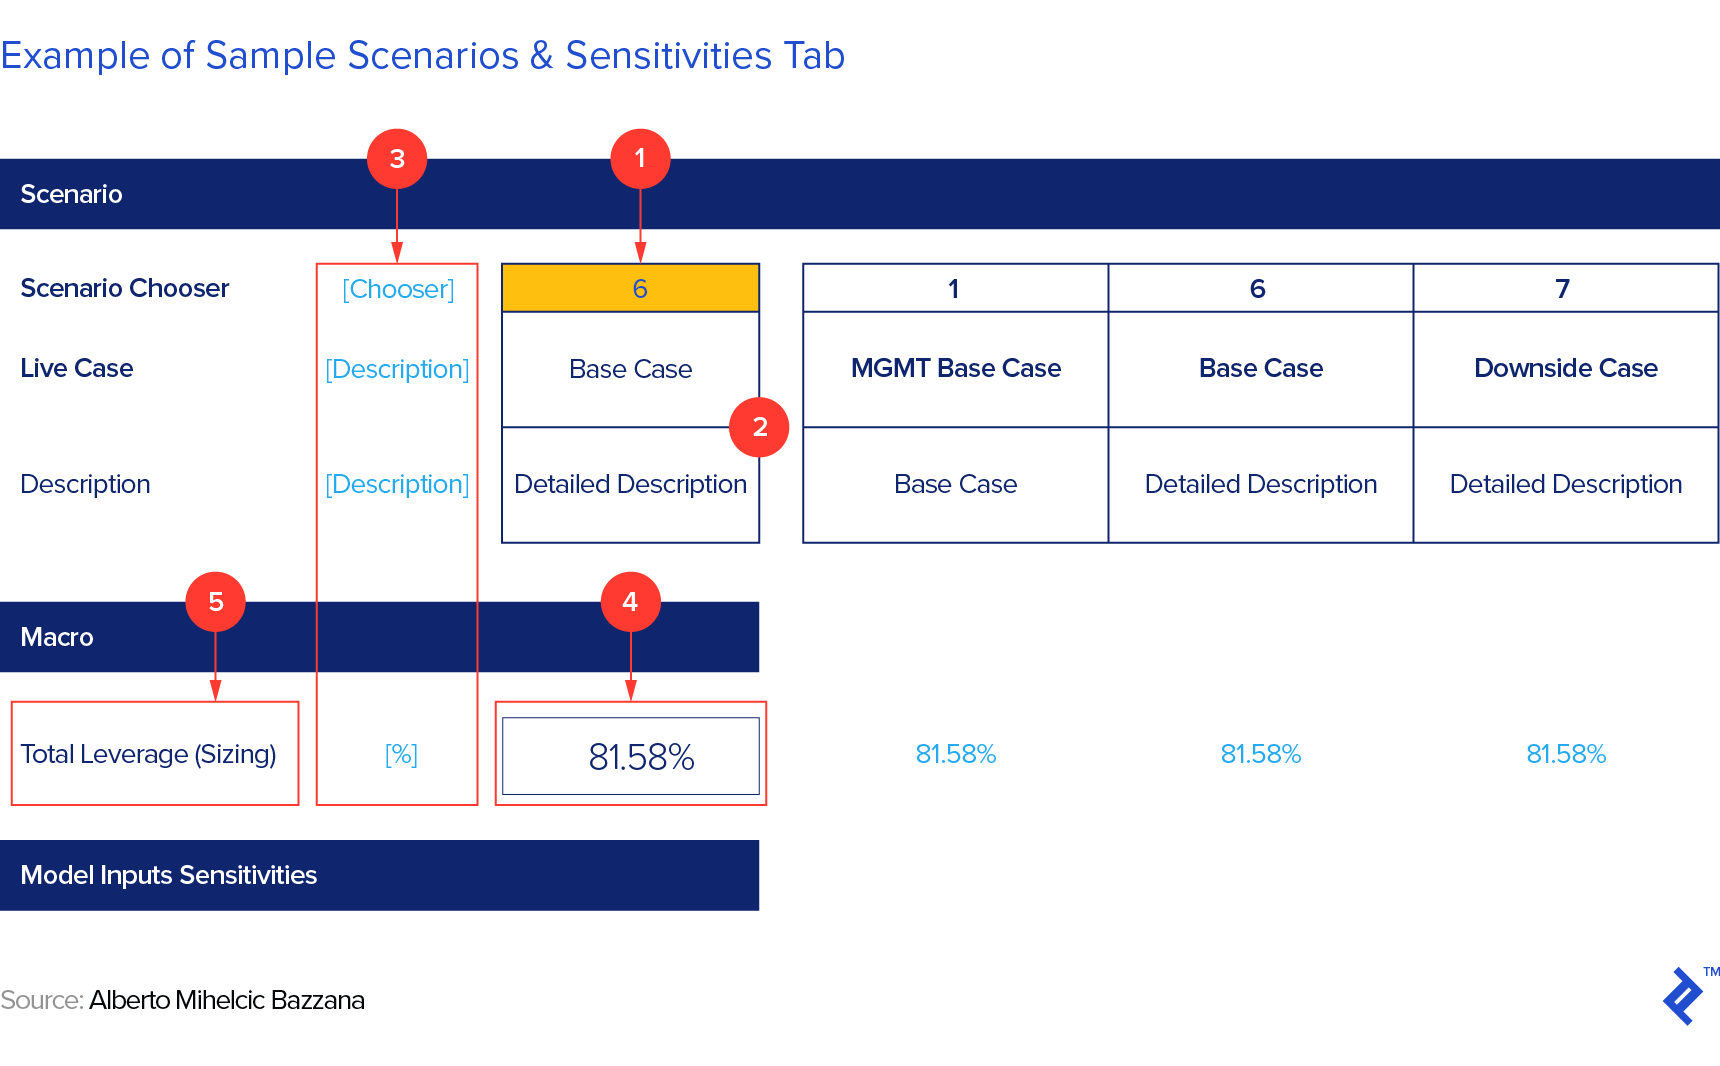 Example of a sample scenarios and sensitivities tab